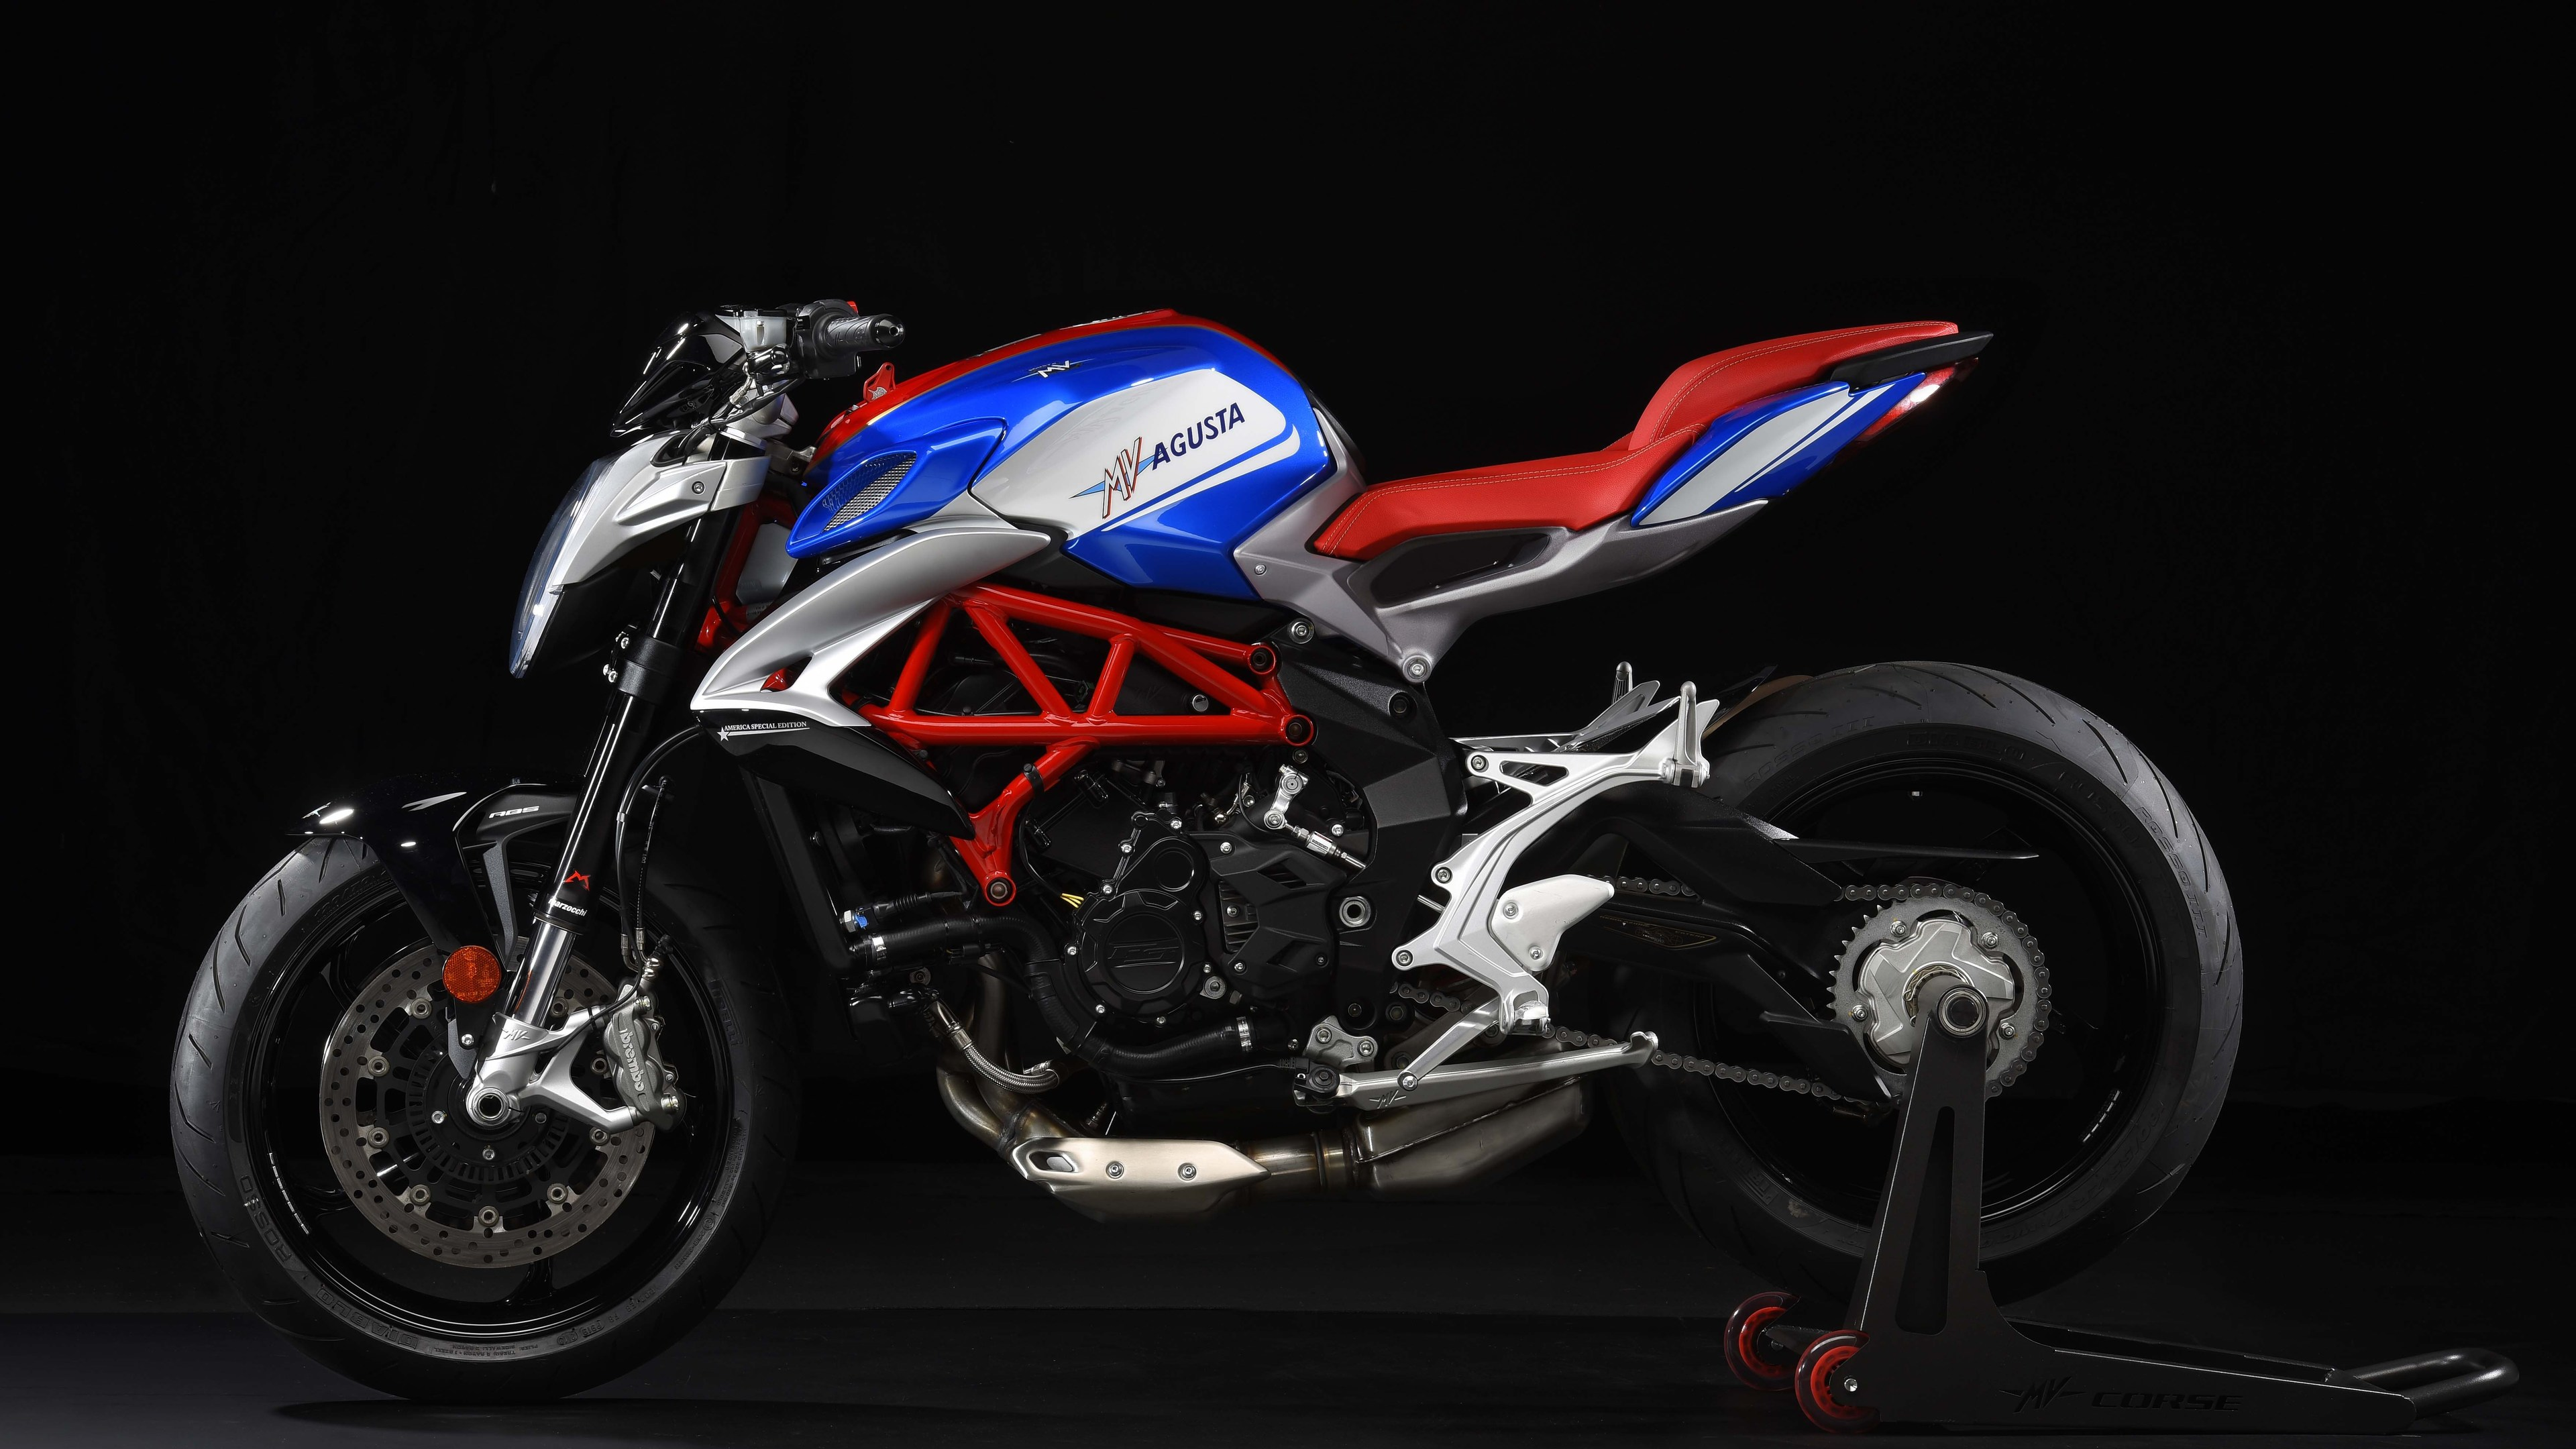 mv agusta brutale 800 american 4k 1536316298 - MV Agusta Brutale 800 American 4k - mv agusta wallpapers, hd-wallpapers, bikes wallpapers, 4k-wallpapers, 2017 bikes wallpapers